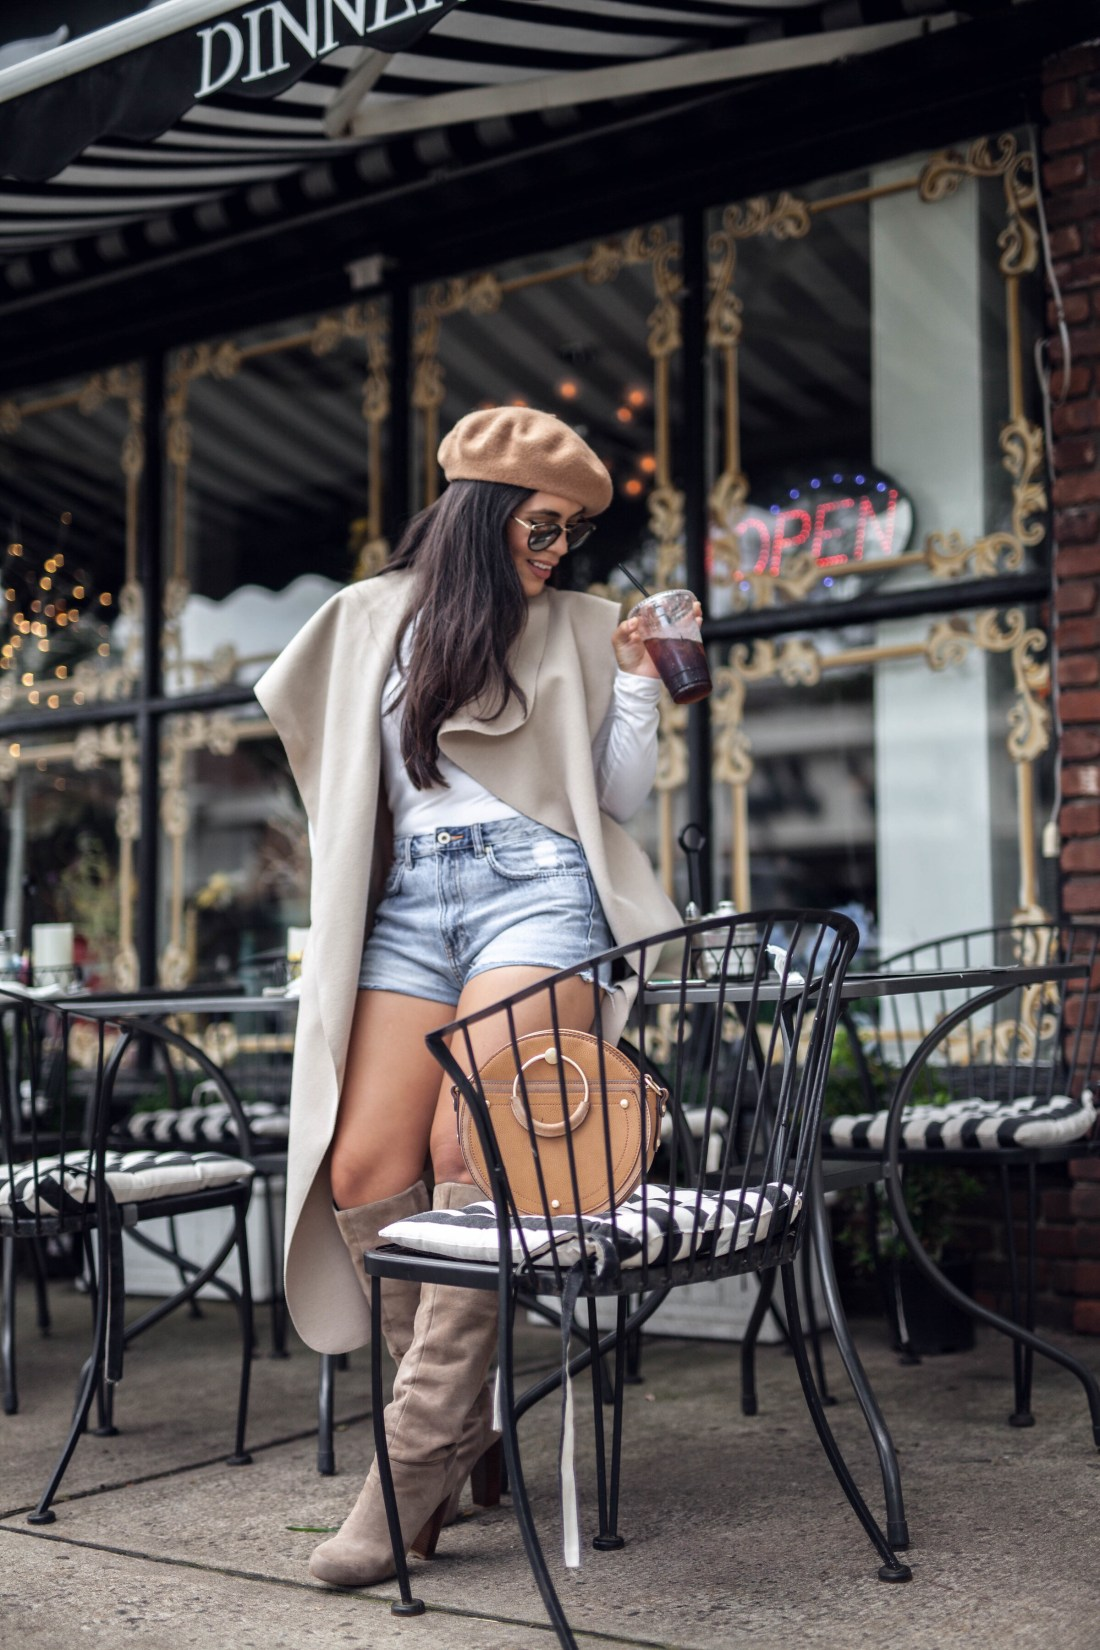 A Blogger Photo Shoot on how to wear shorts in the fall